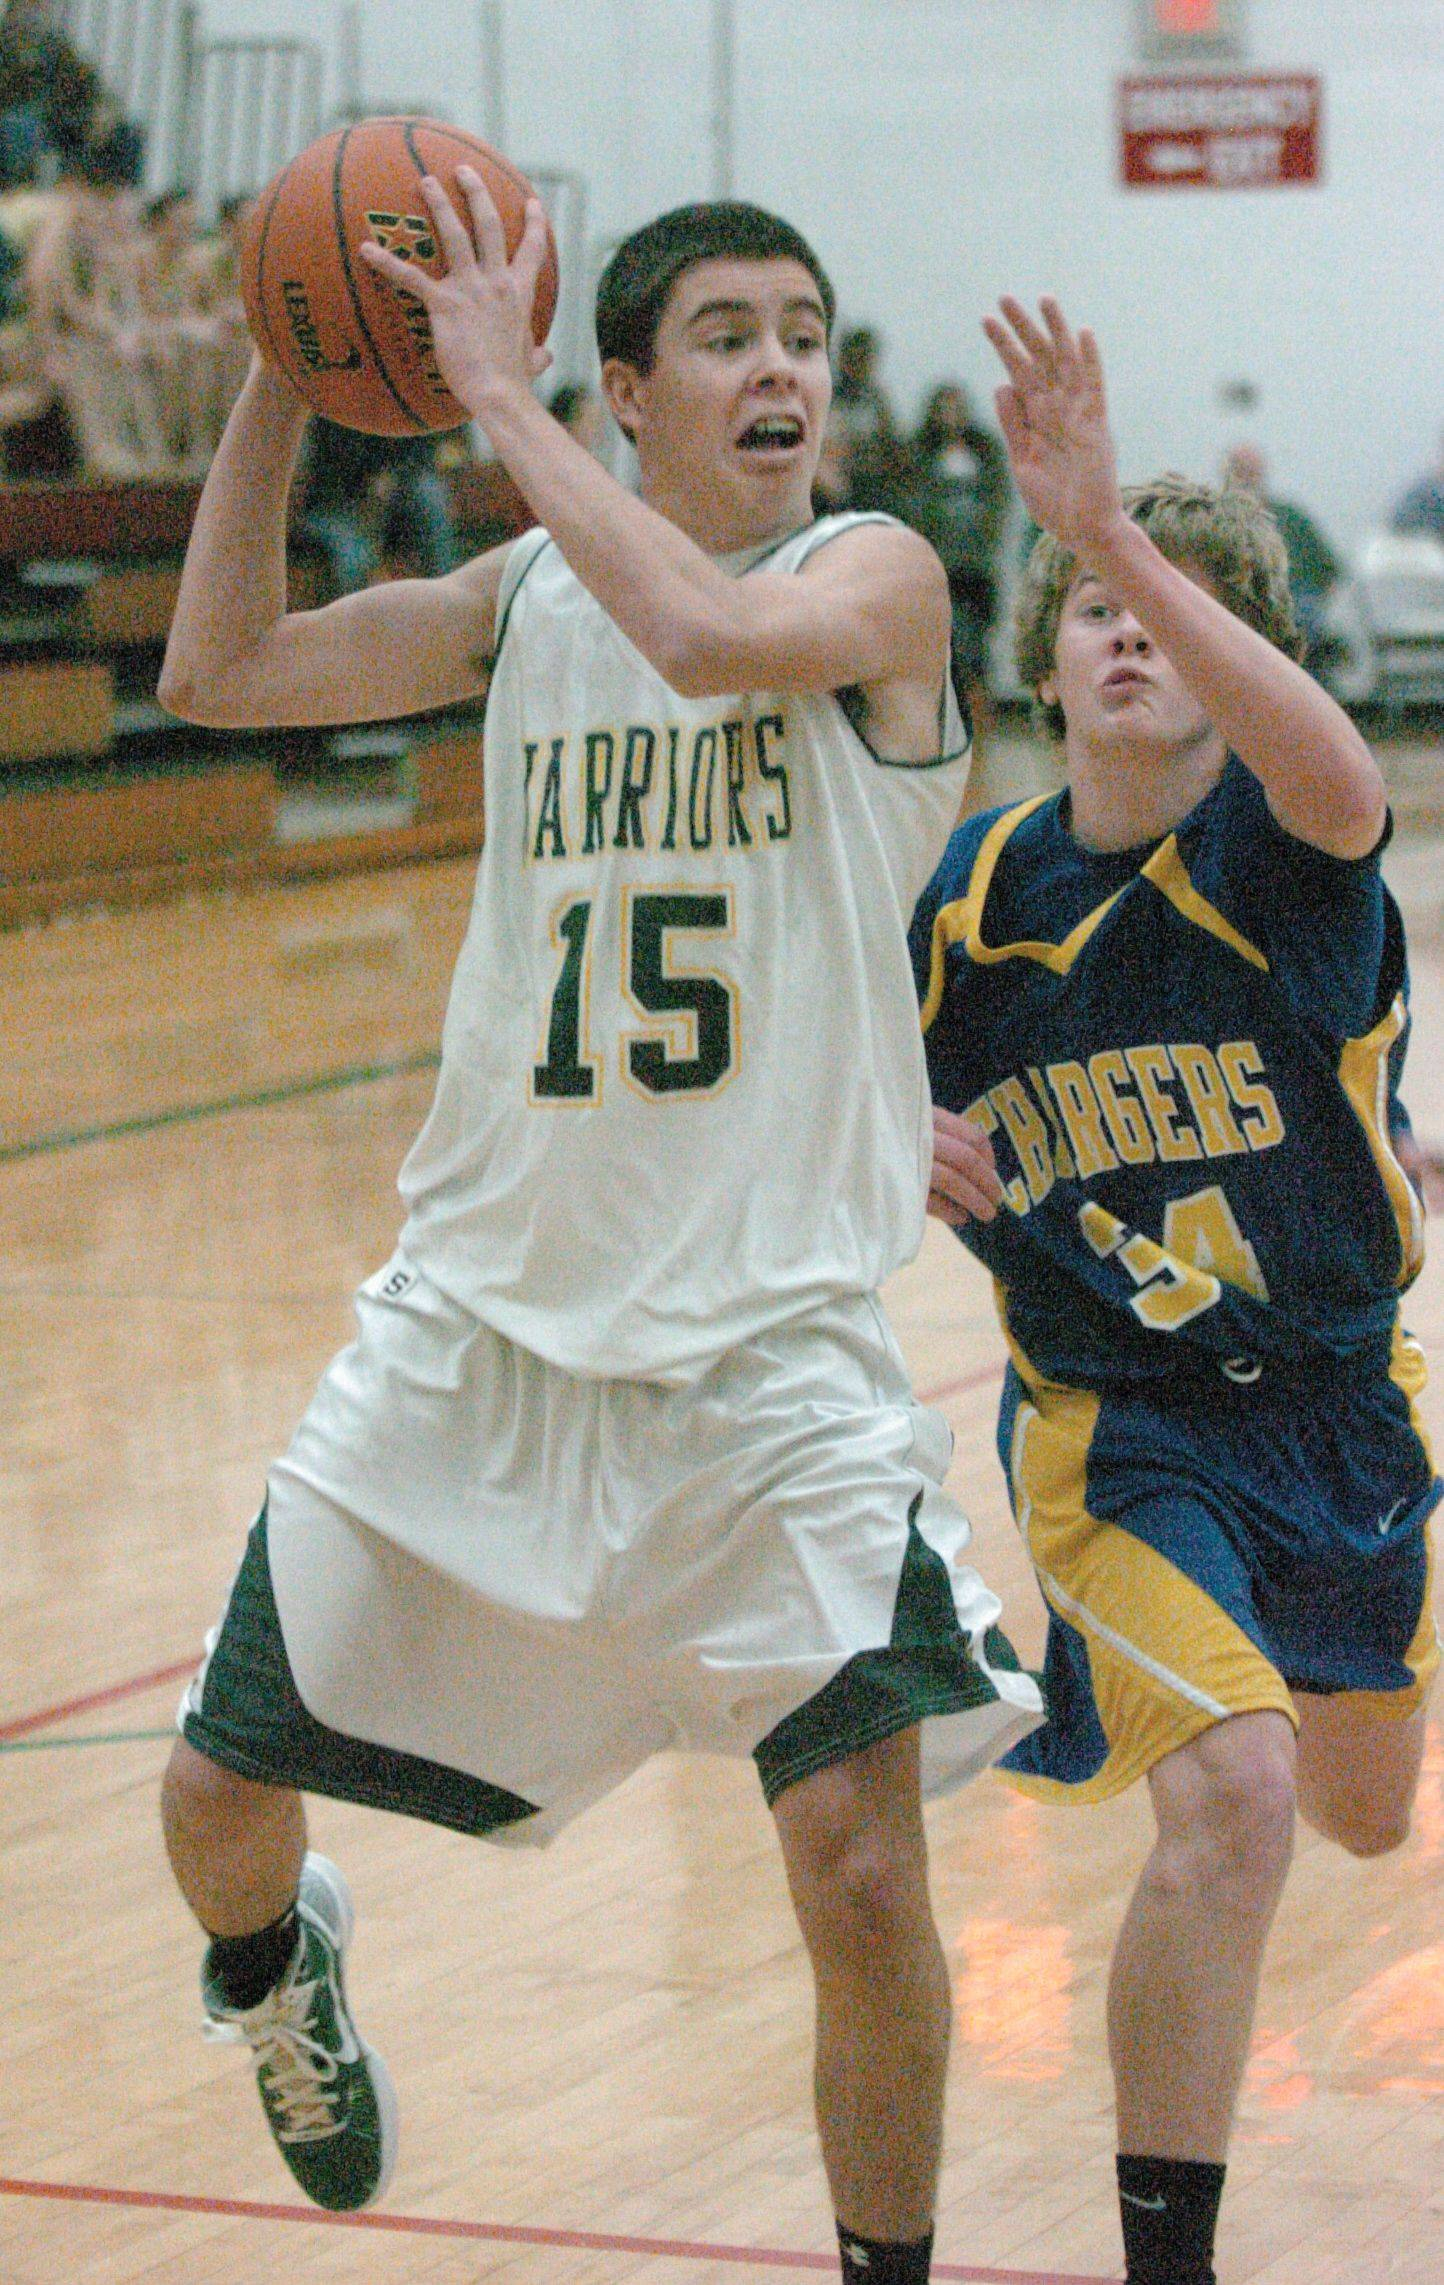 Images from the Aurora Central vs. Waubonsie Valley boys basketball game on Tuesday, December 21, 2010.